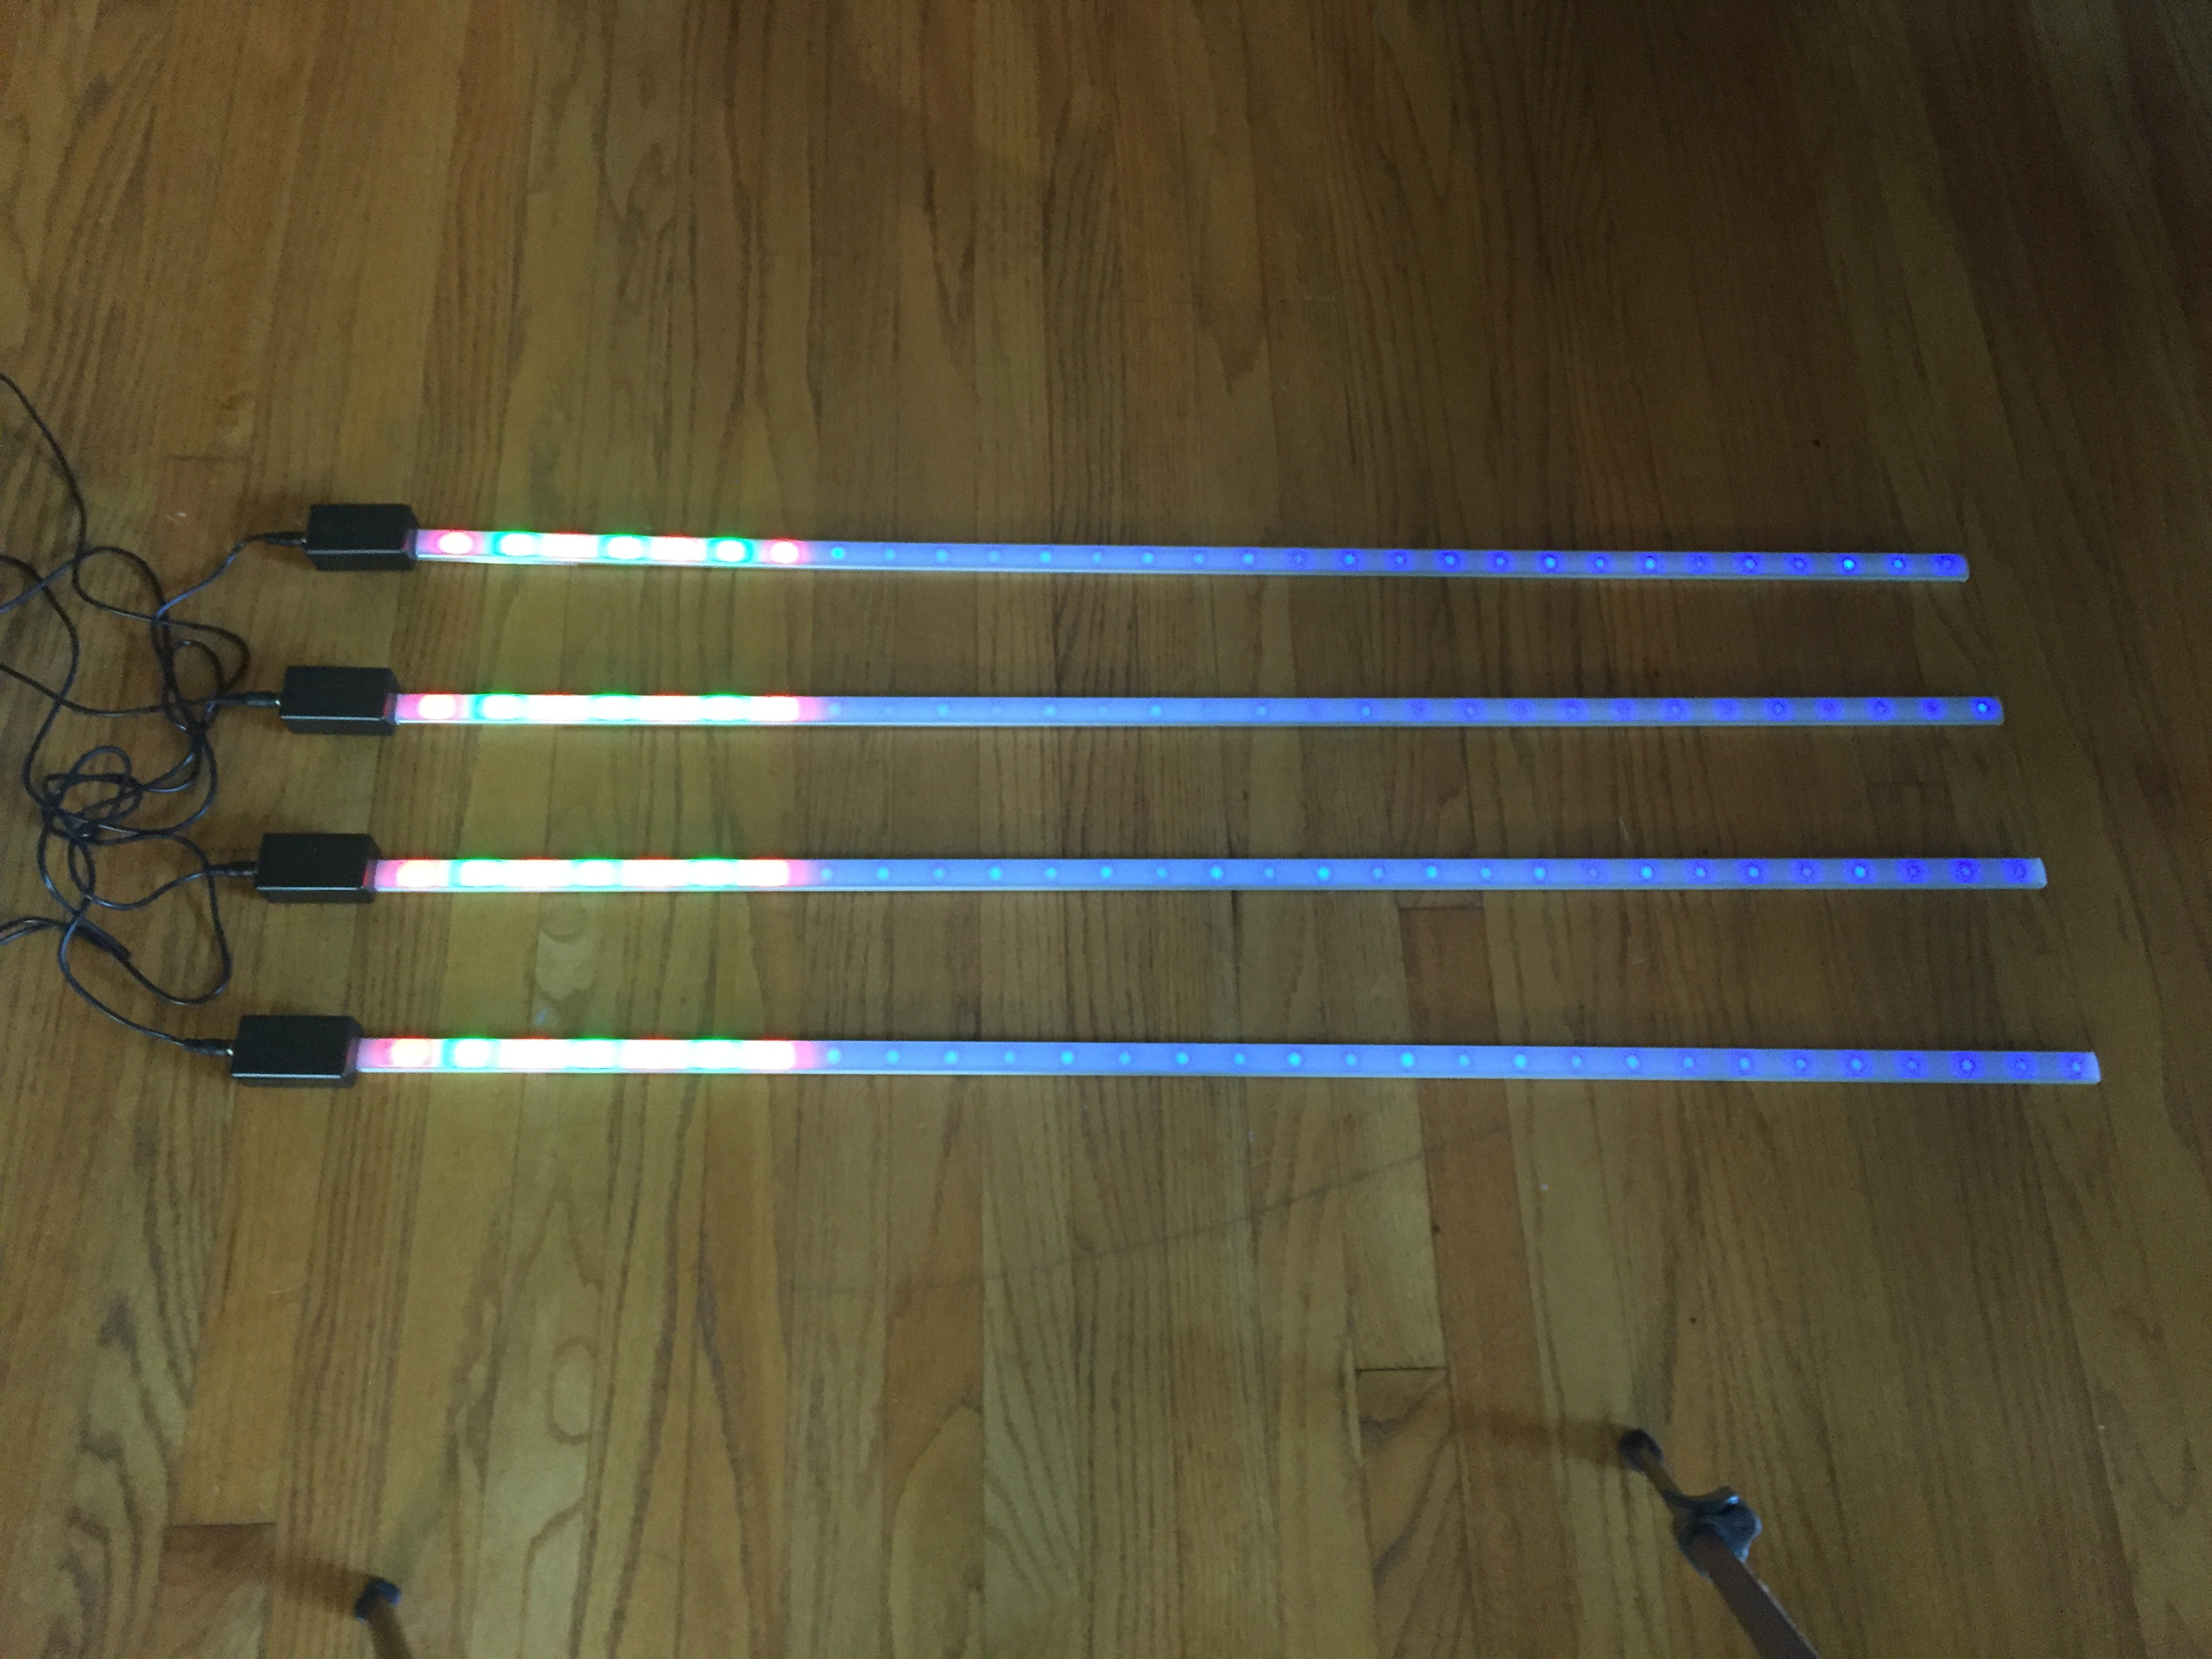 Picture of WiFi Mesh Synchronized LED Bars